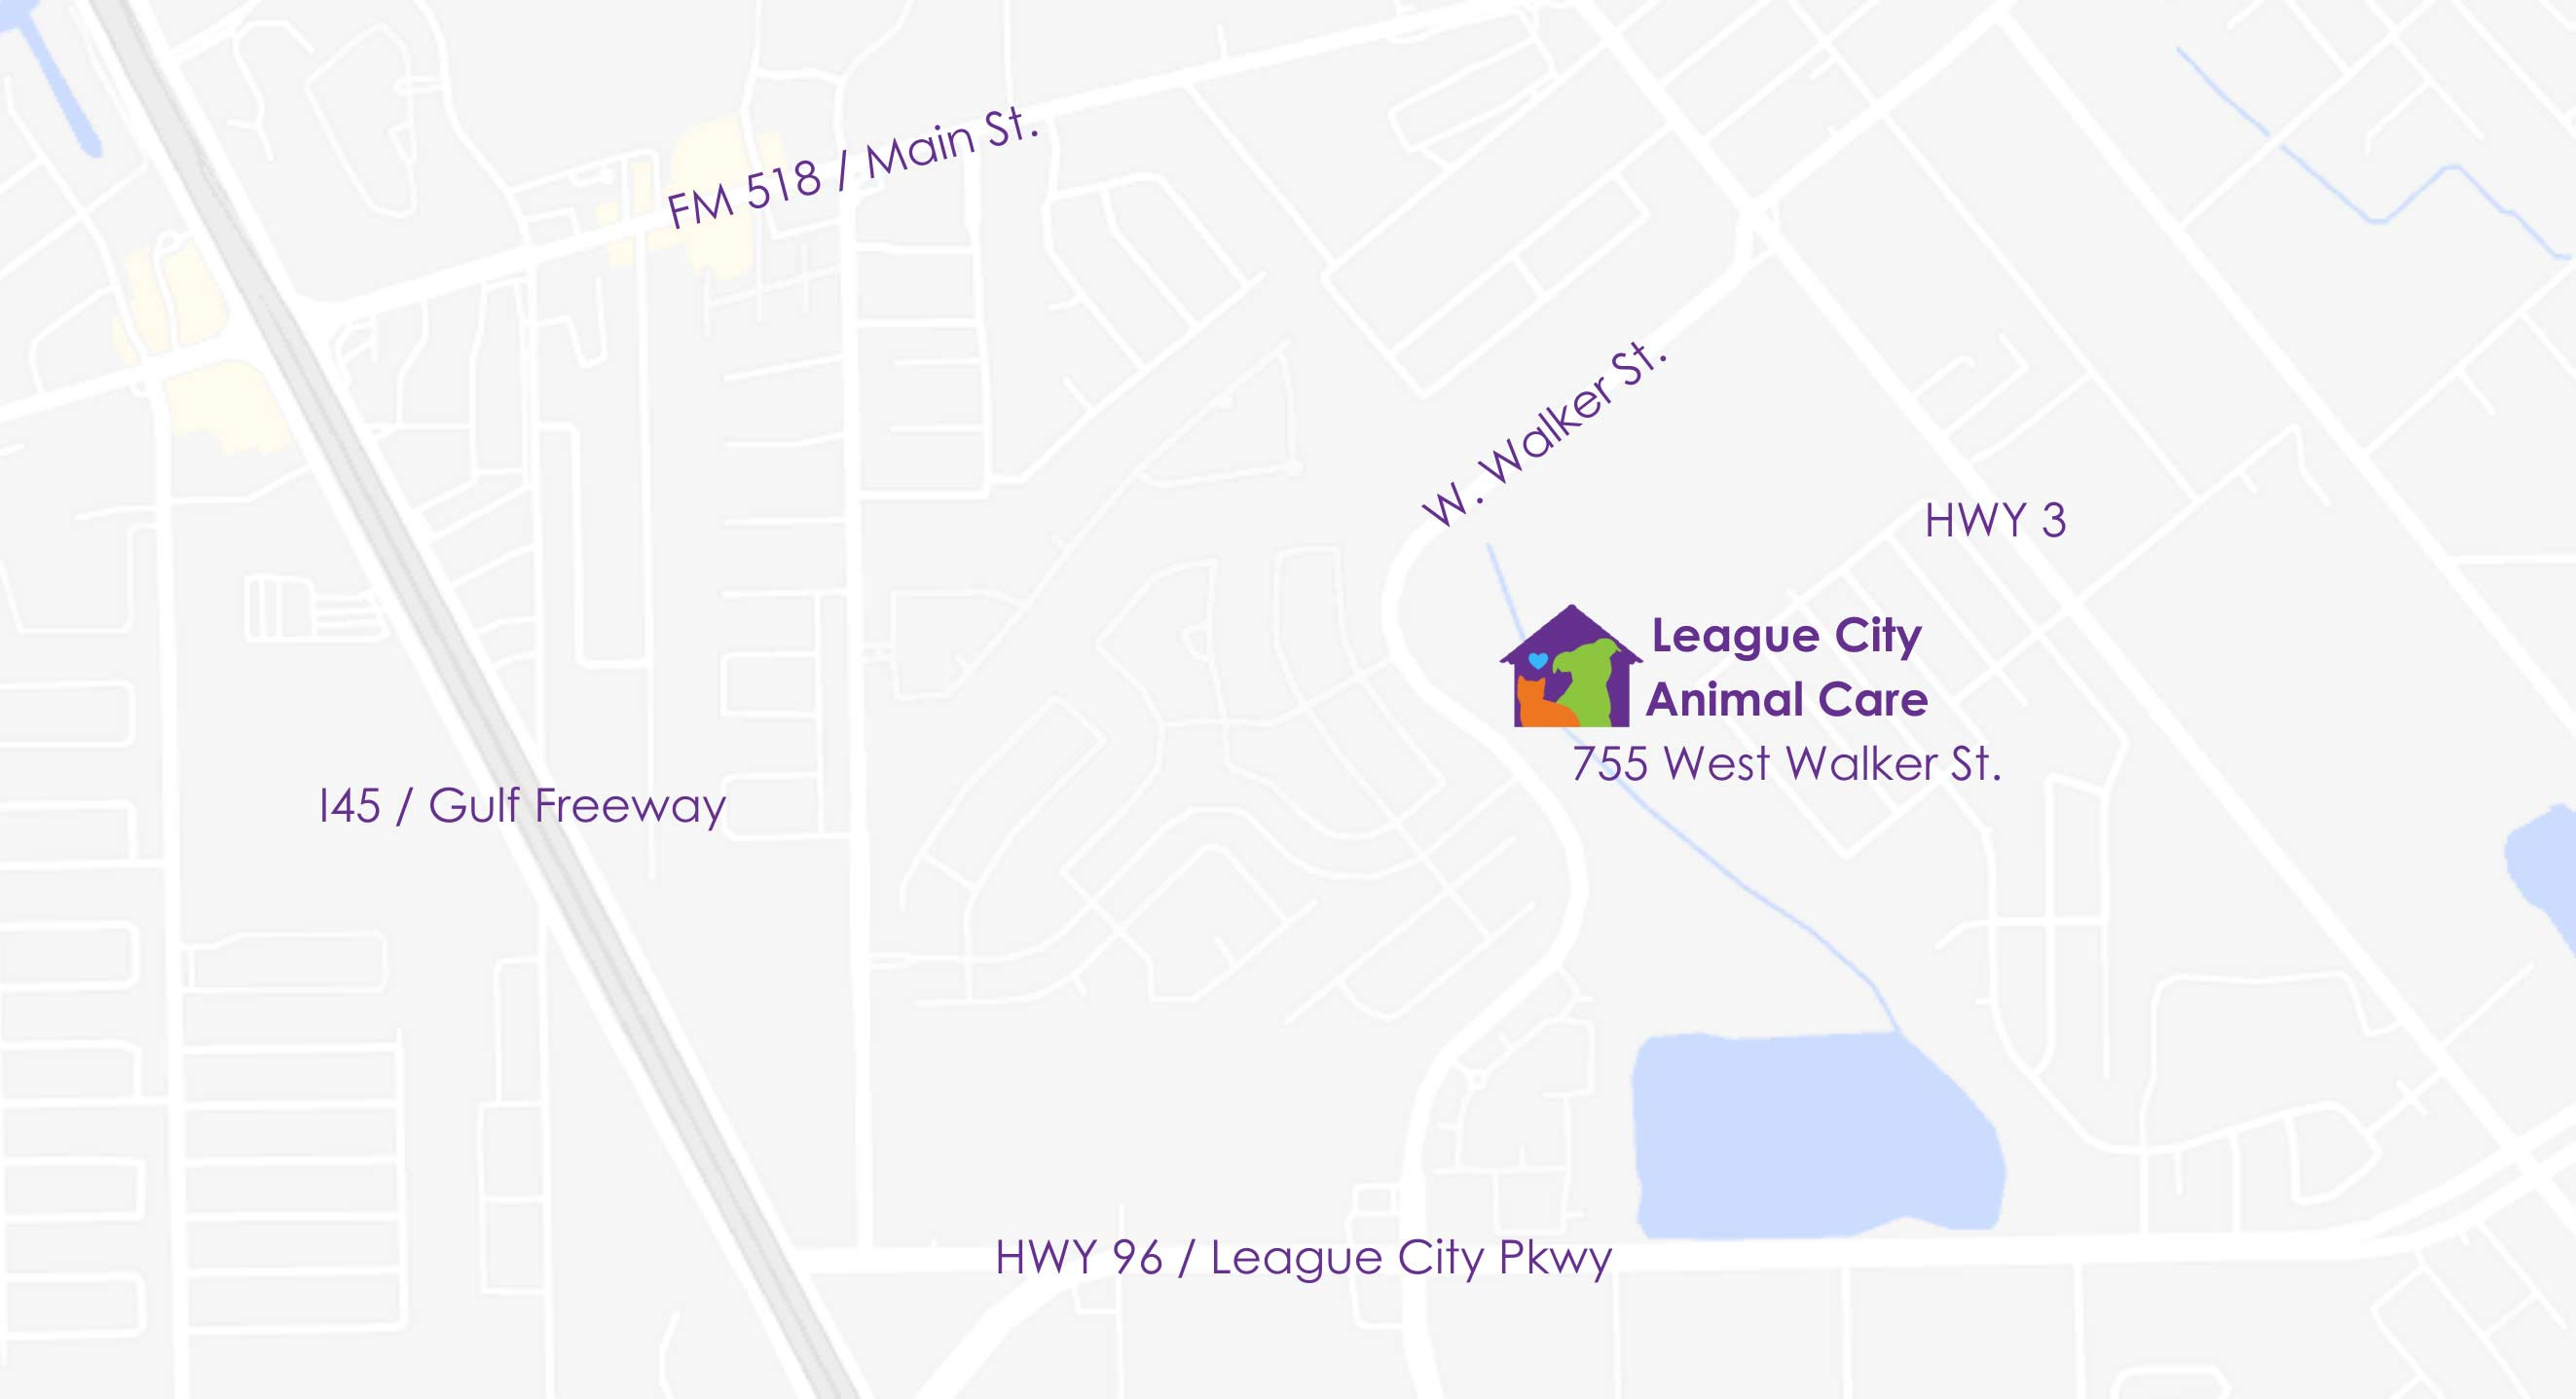 Map of League city animal care and adoption center.